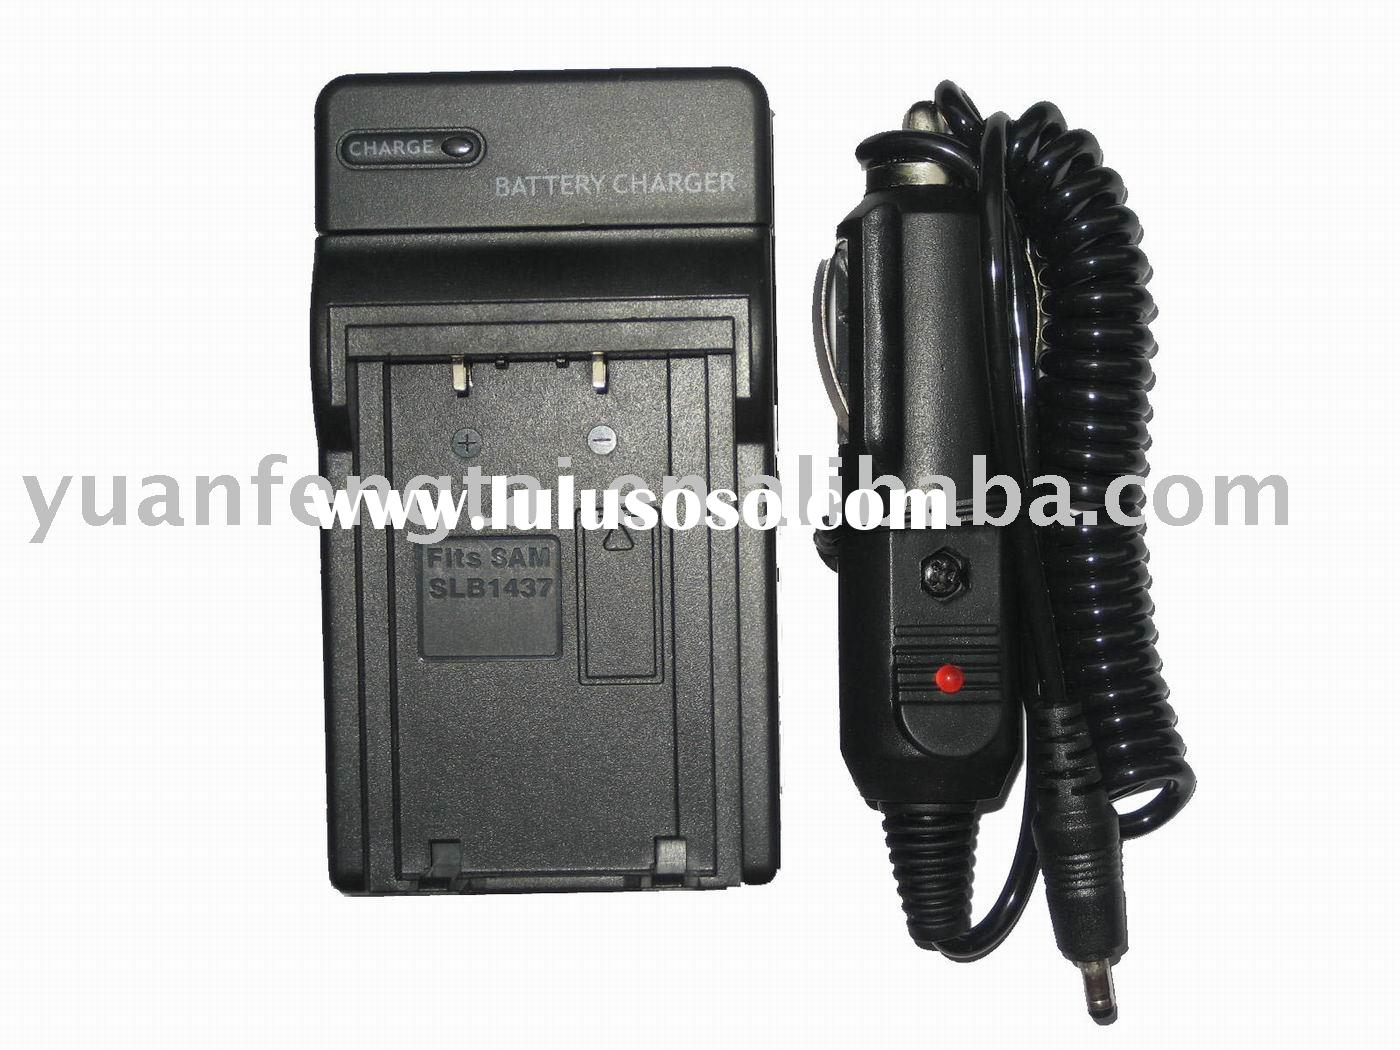 Digital Camera Battery Charger for Samsung SLB-1437